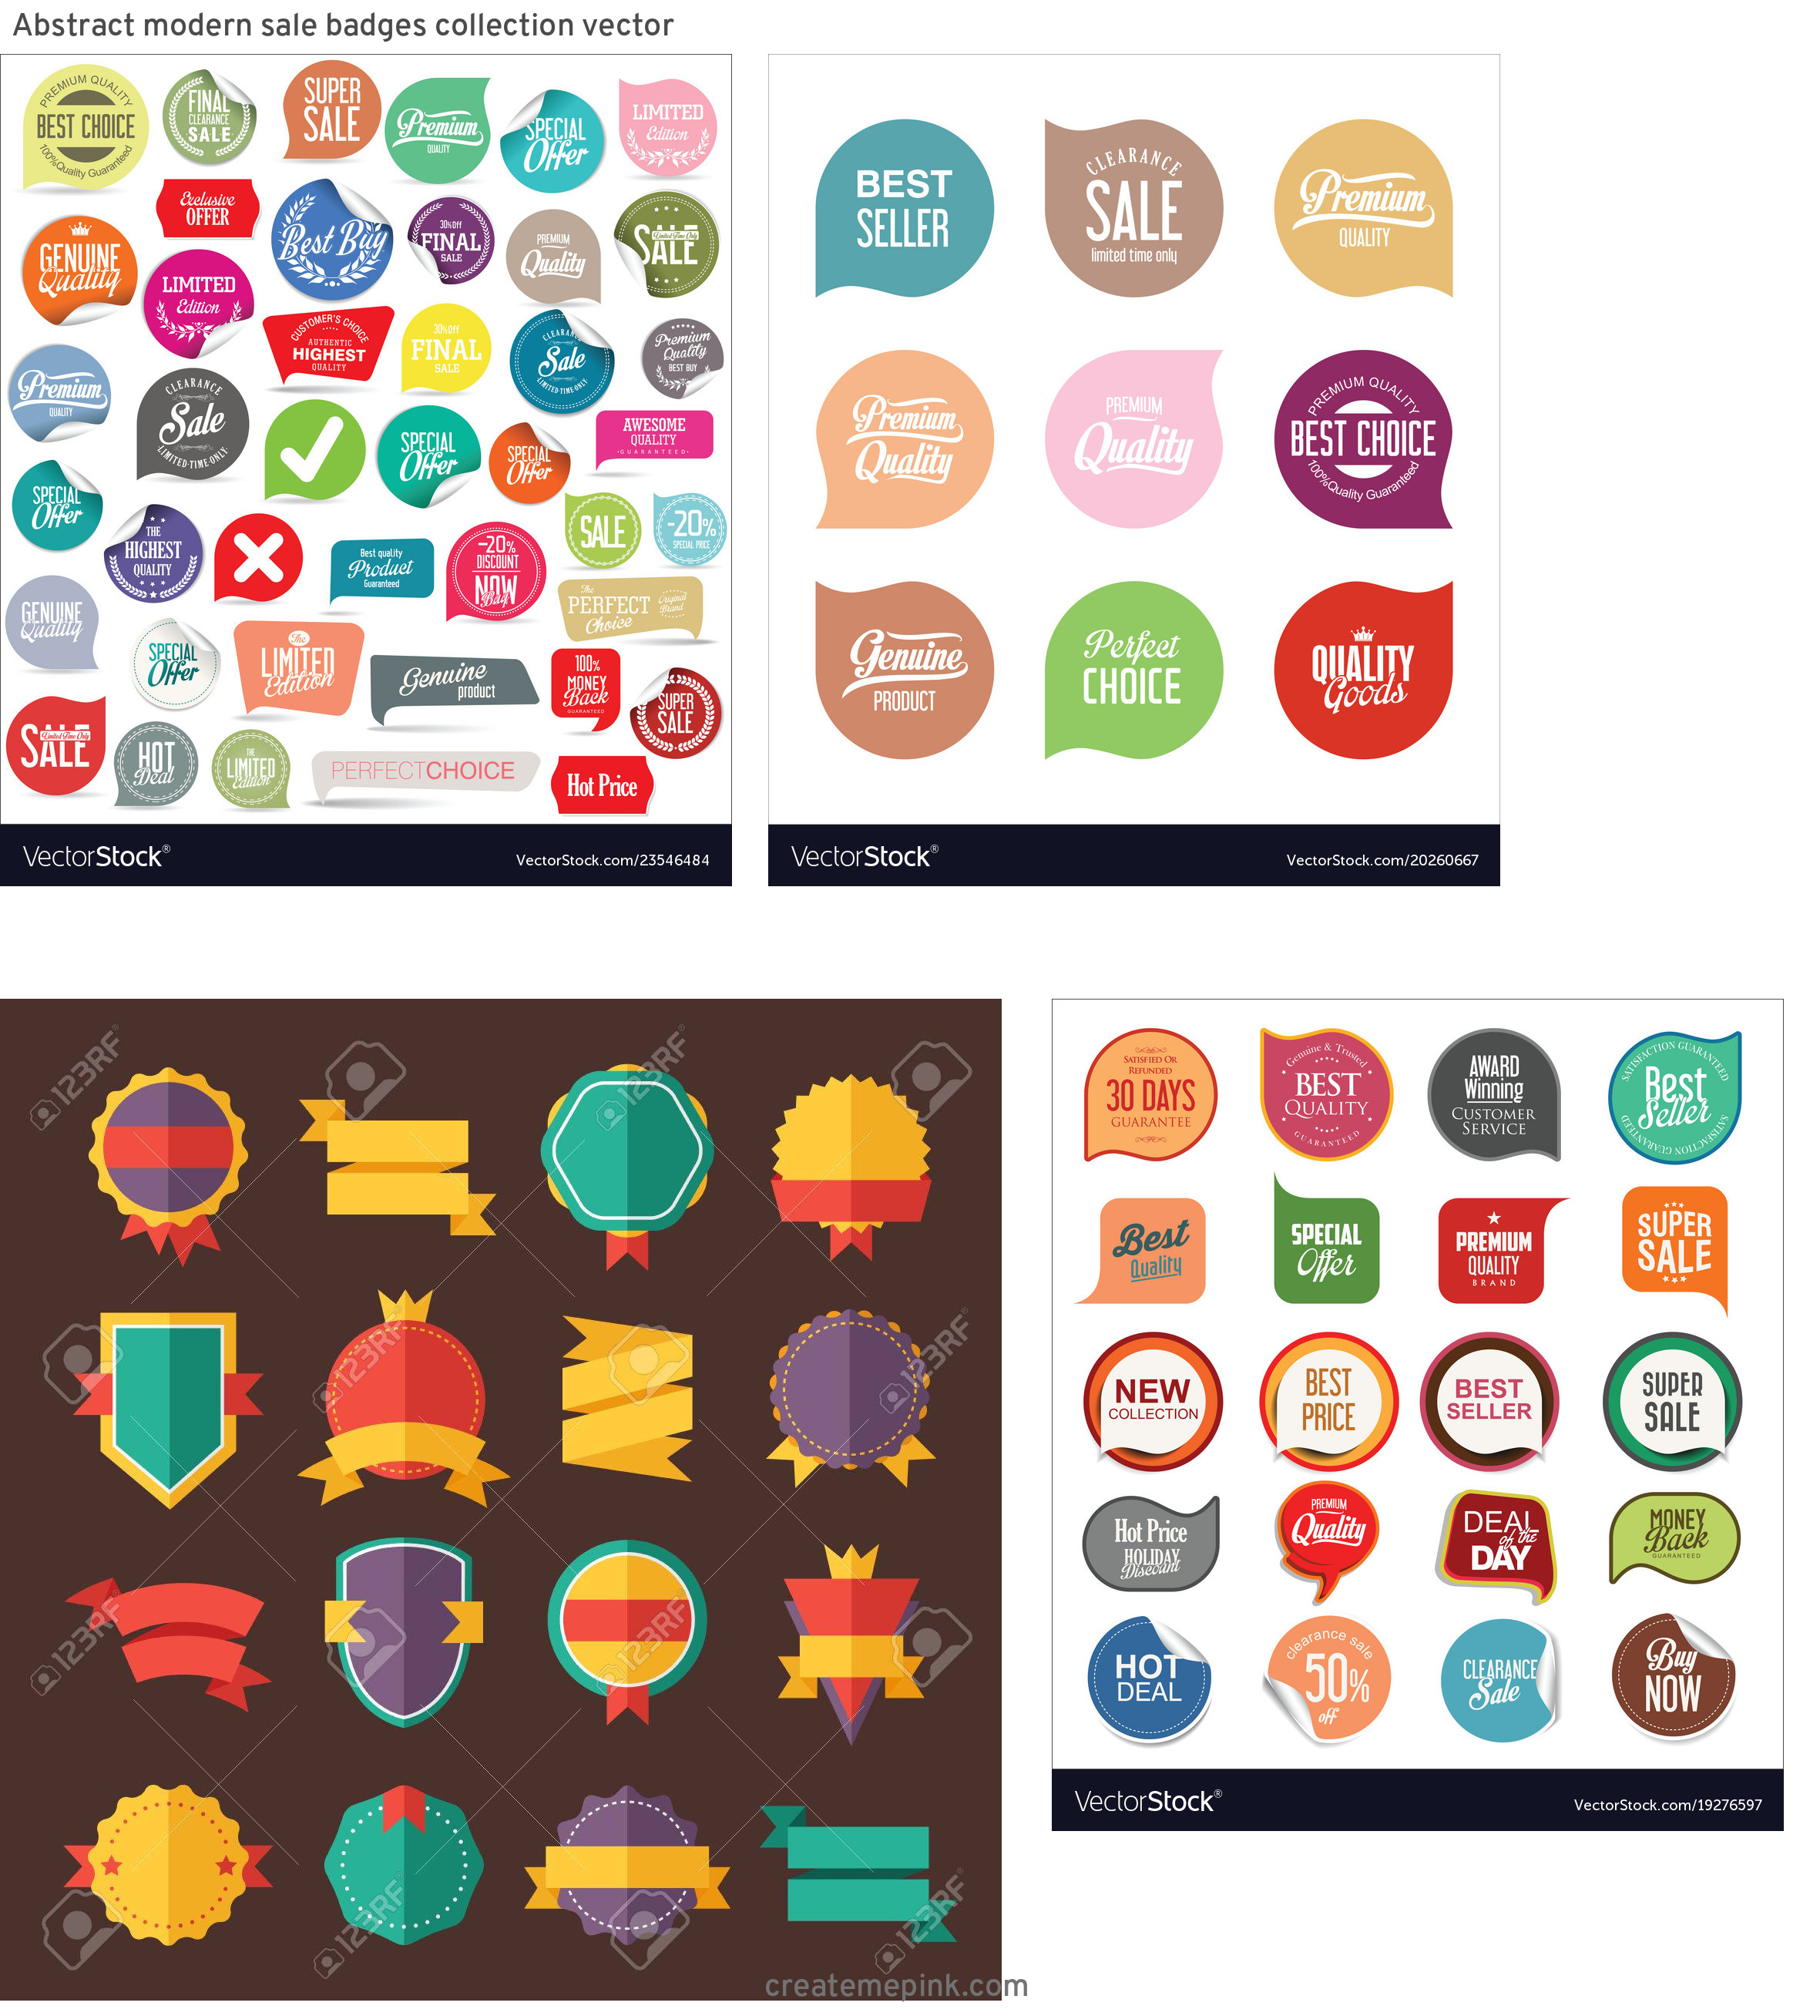 Modern Vector Badges: Abstract Modern Sale Badges Collection Vector